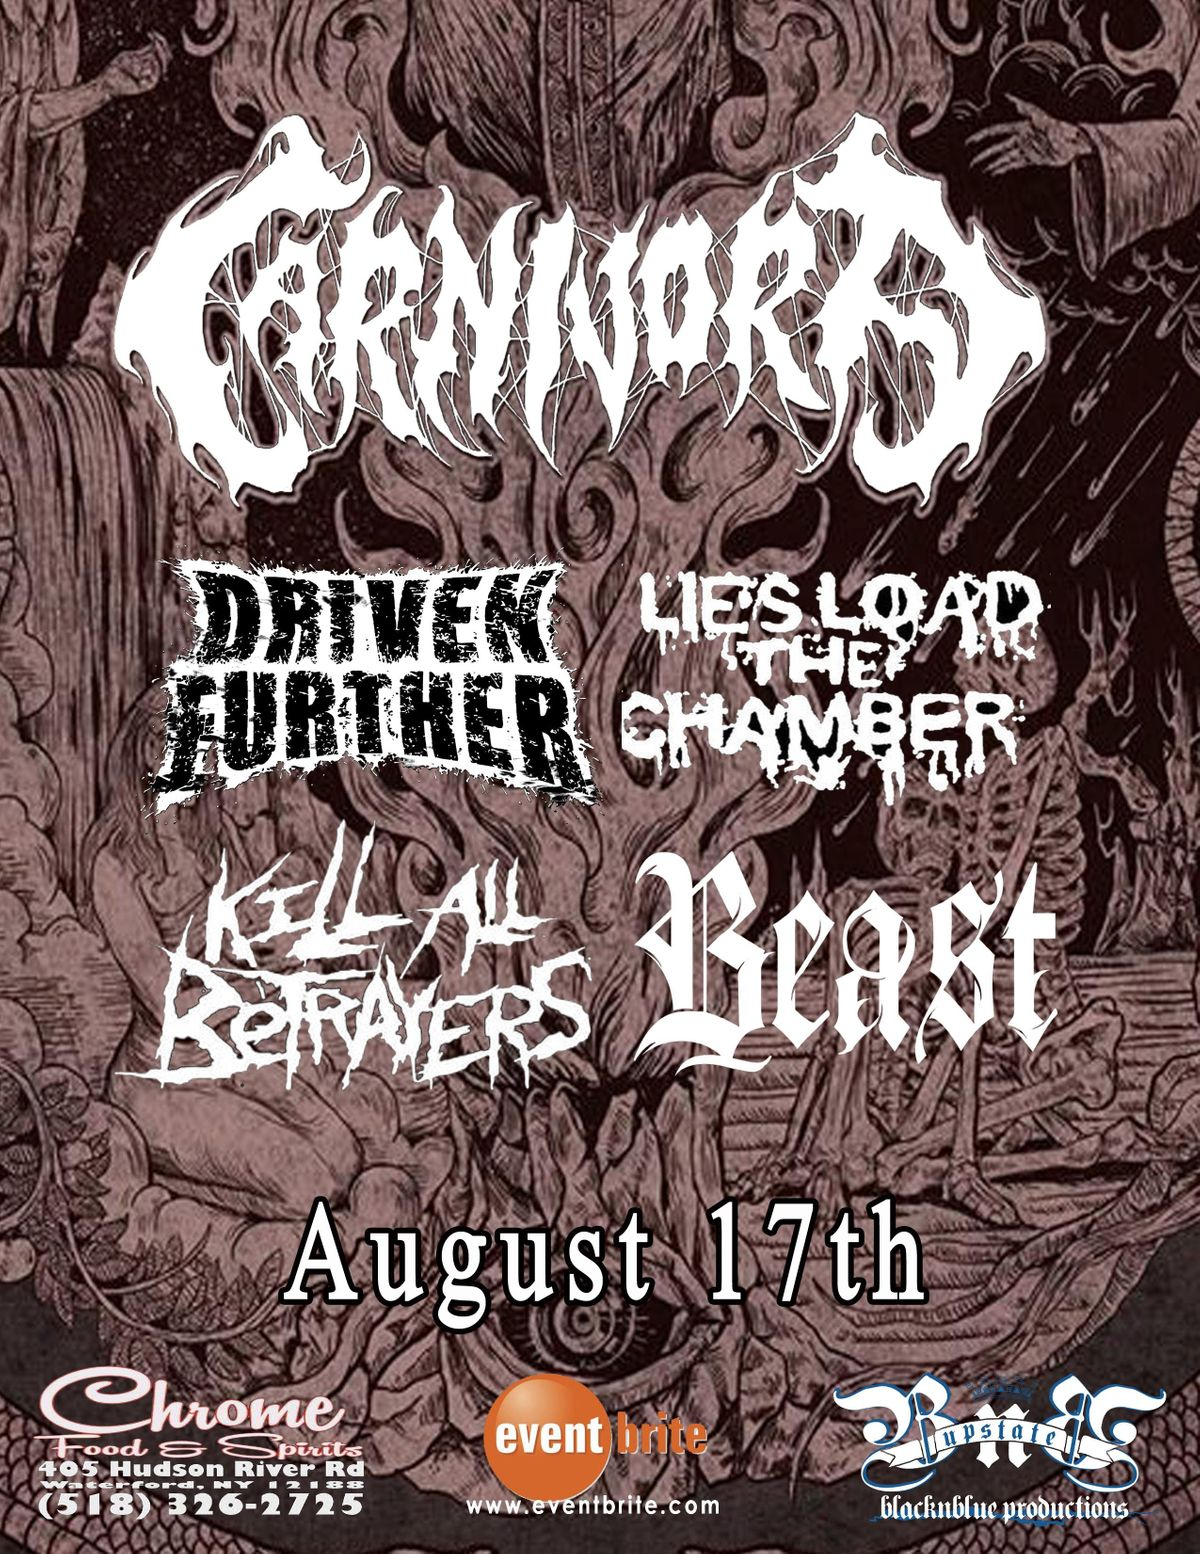 Carnivora Driven Further Lies Load The Chamber Kll All Betrayers Beast